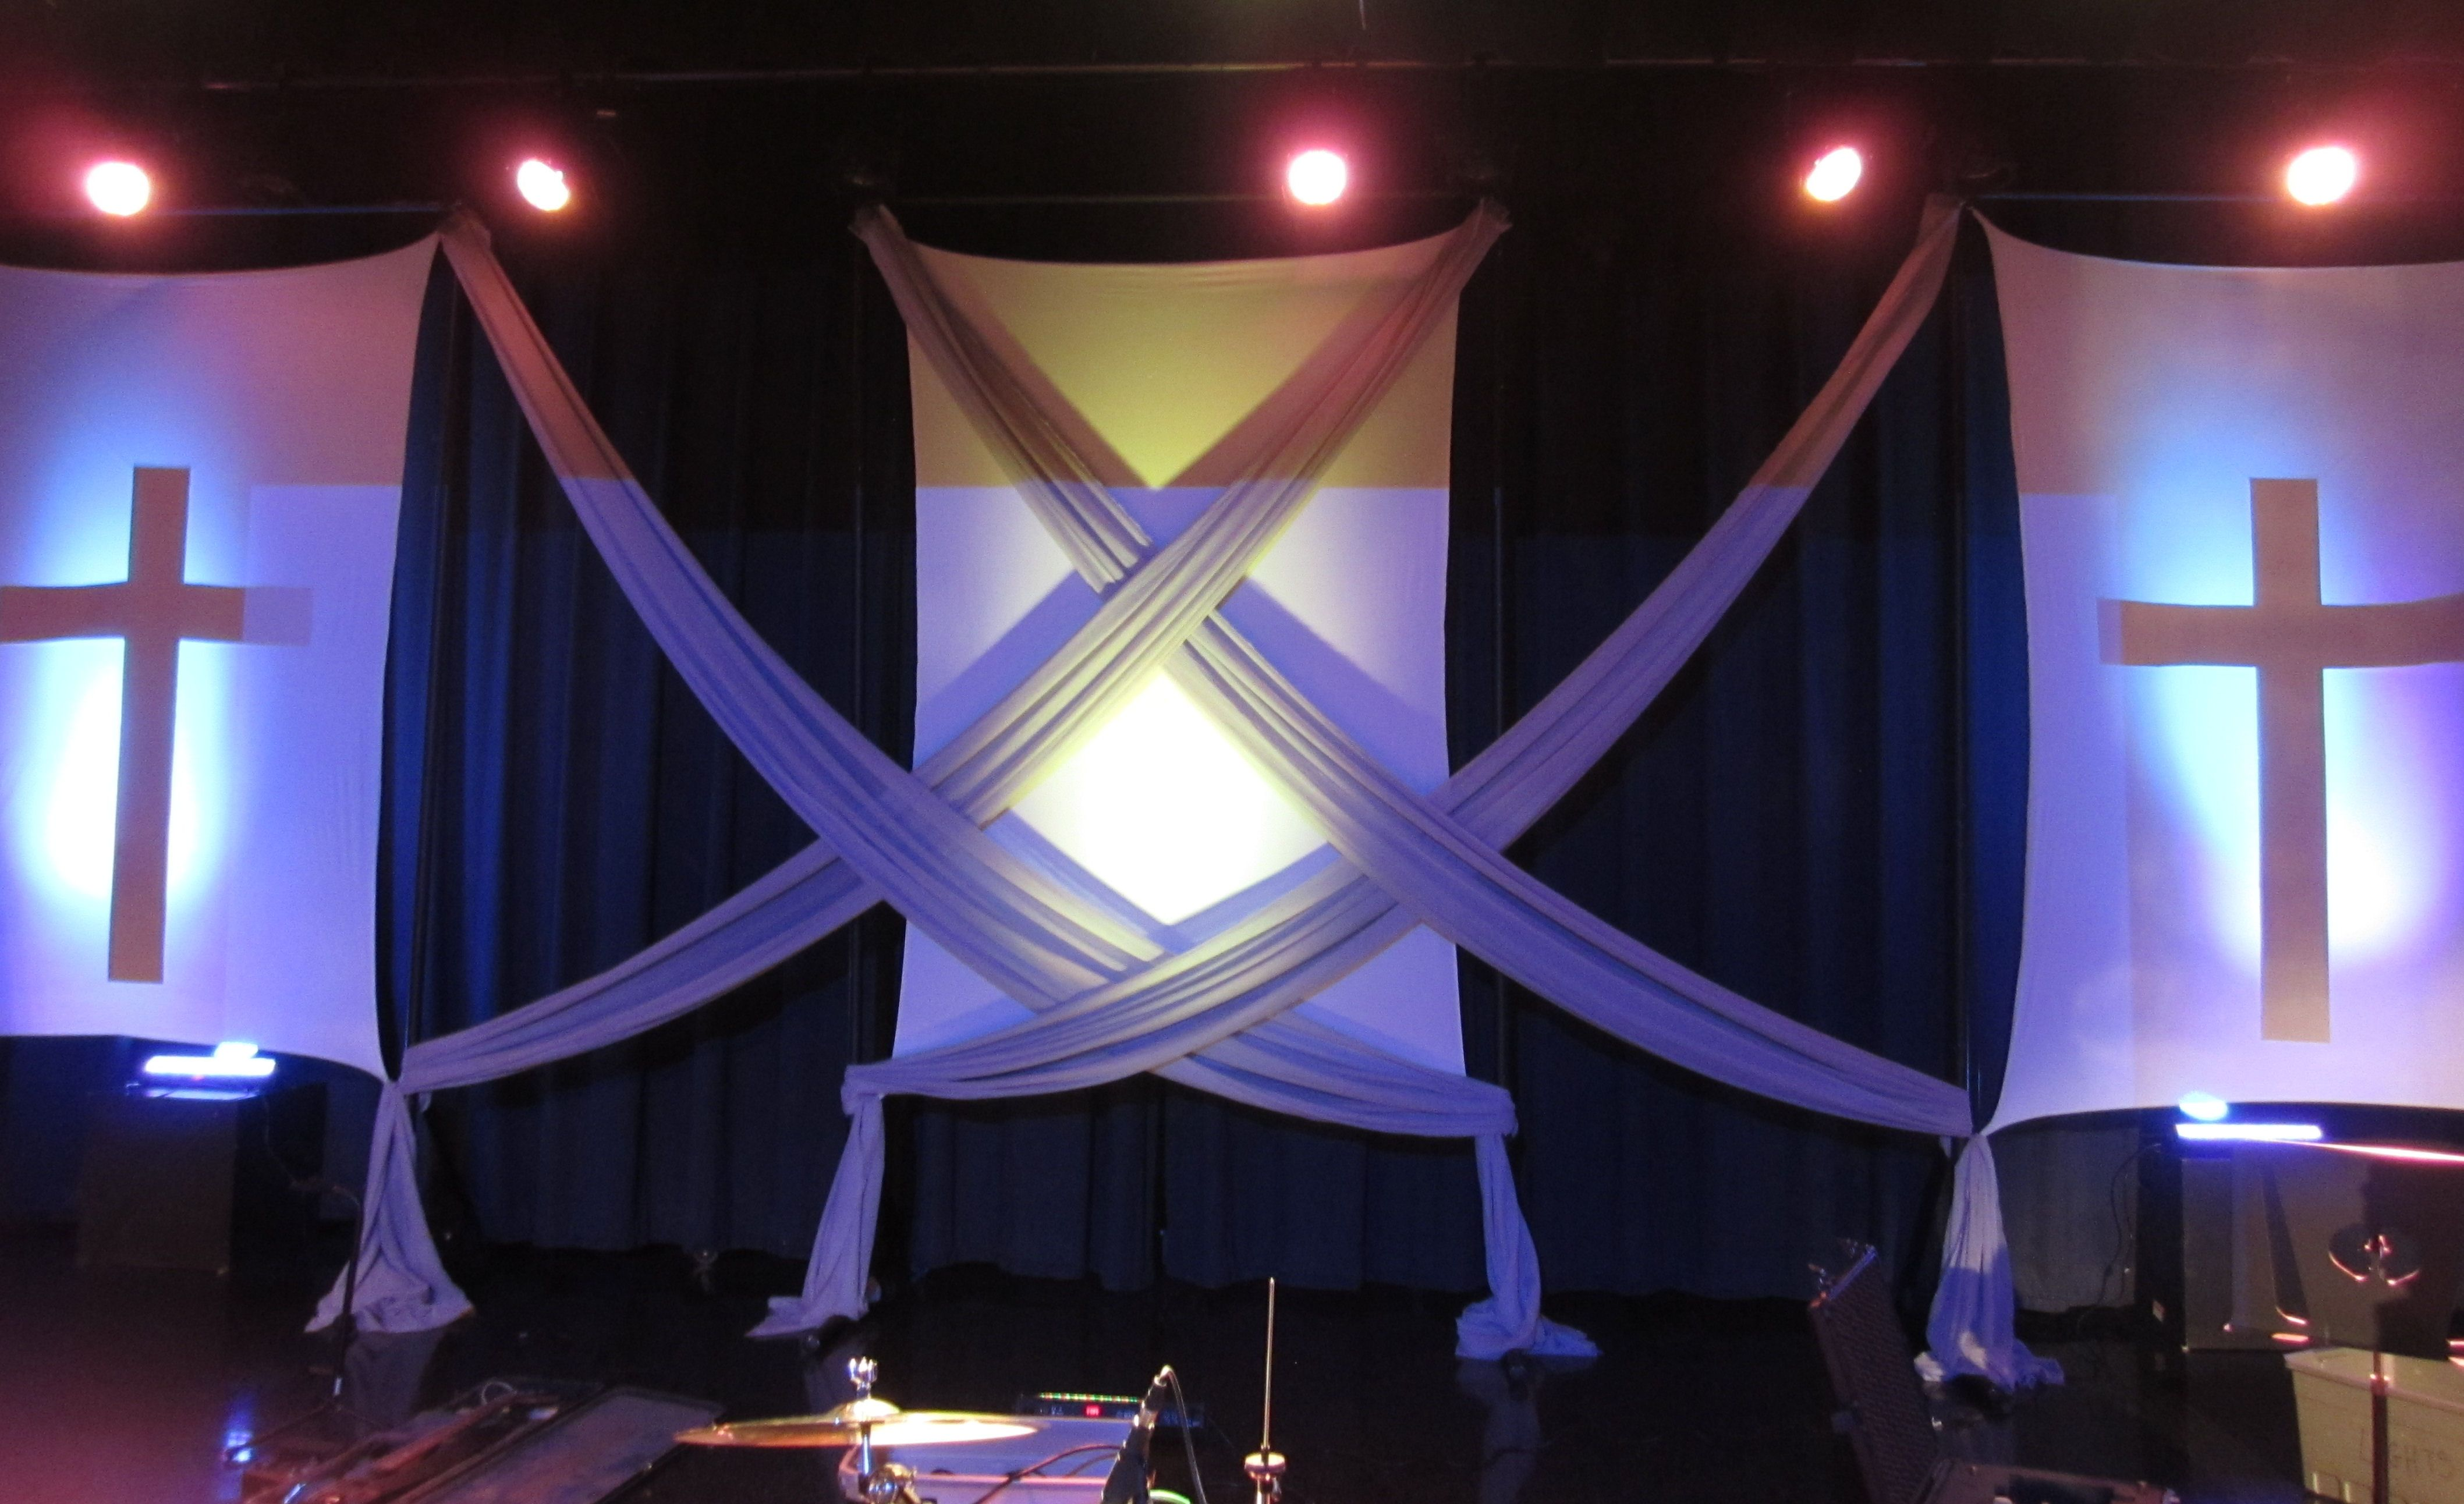 Concert Stage Design Ideas muse stage concert Church Stage Fabric Portable Fabrics Church Stage Design Ideas